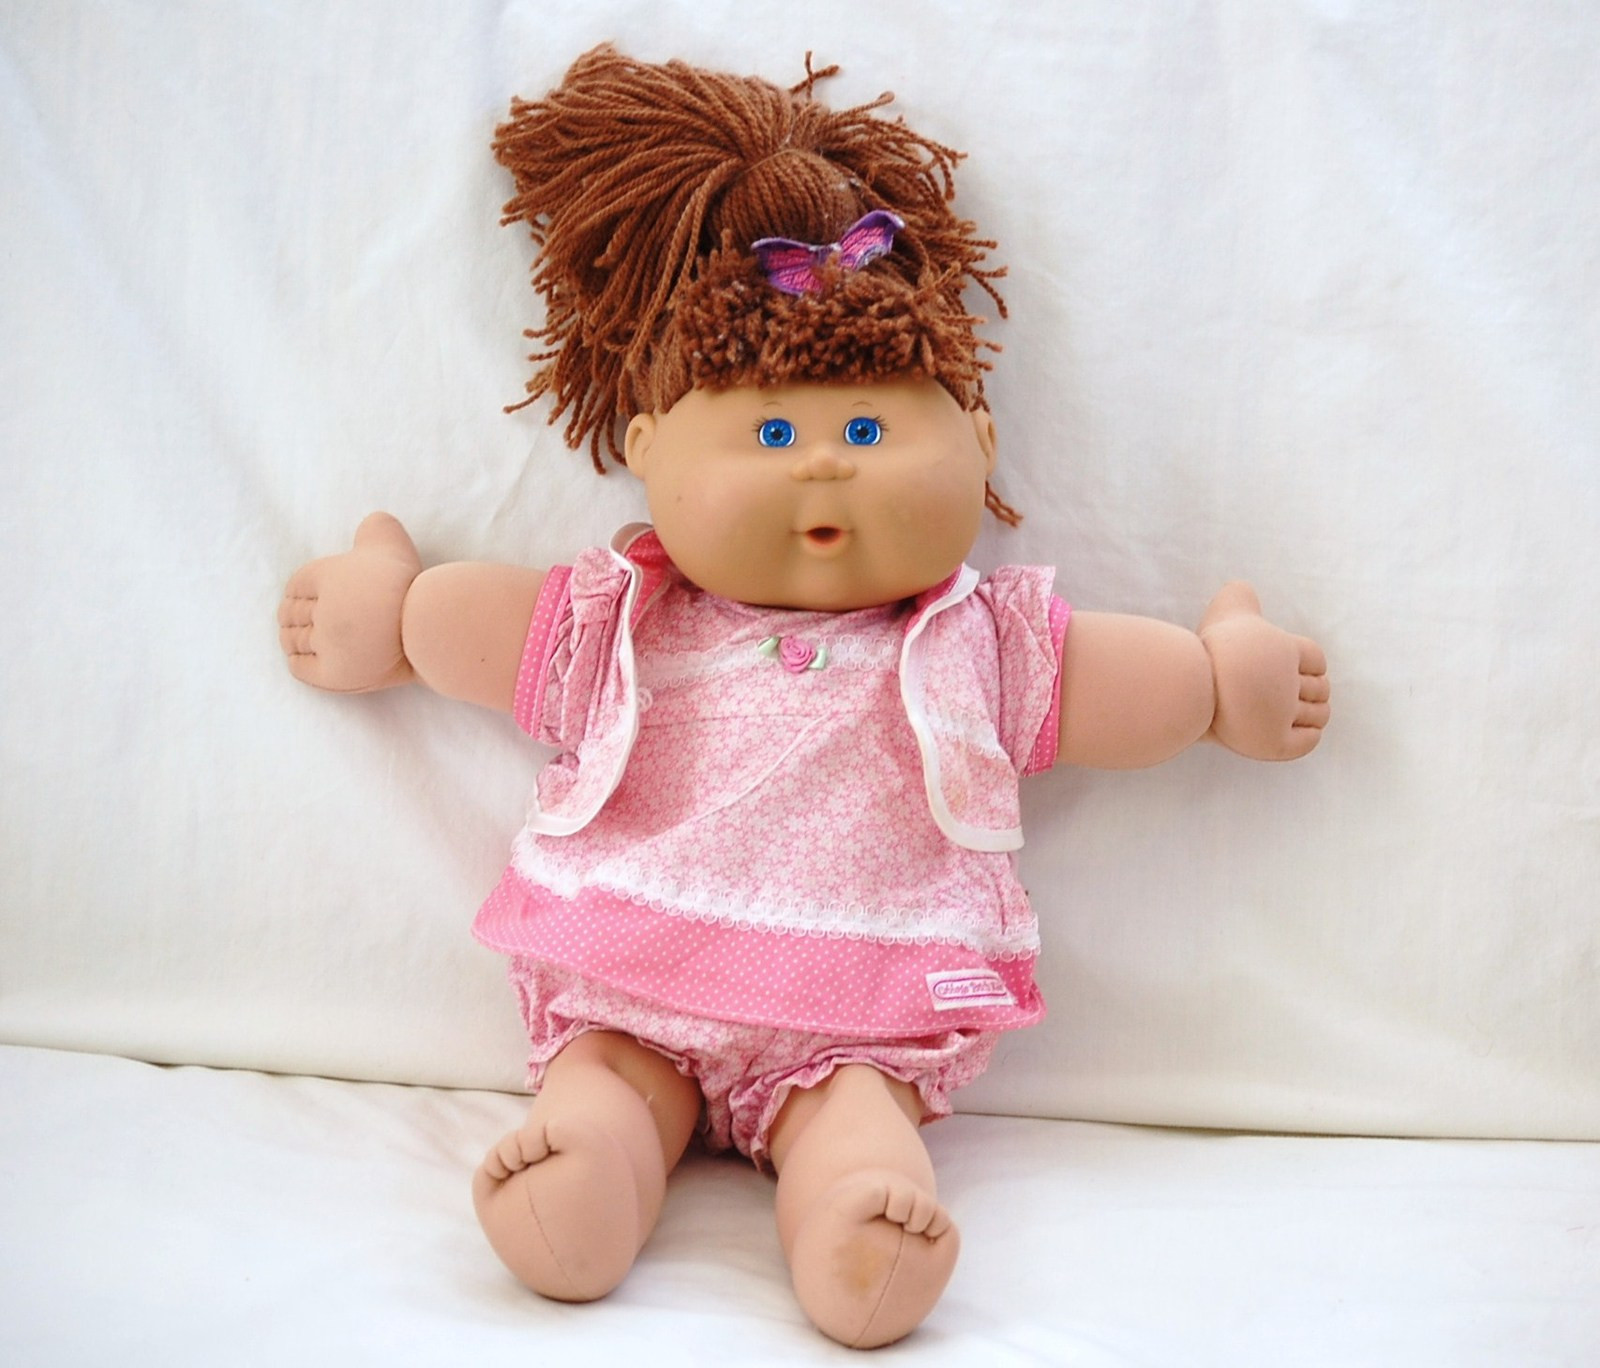 New Cabbage Patch Kid Vintage Doll 2004 original and 14 Old Cabbage Patch Doll Of Wonderful 47 Ideas Old Cabbage Patch Doll